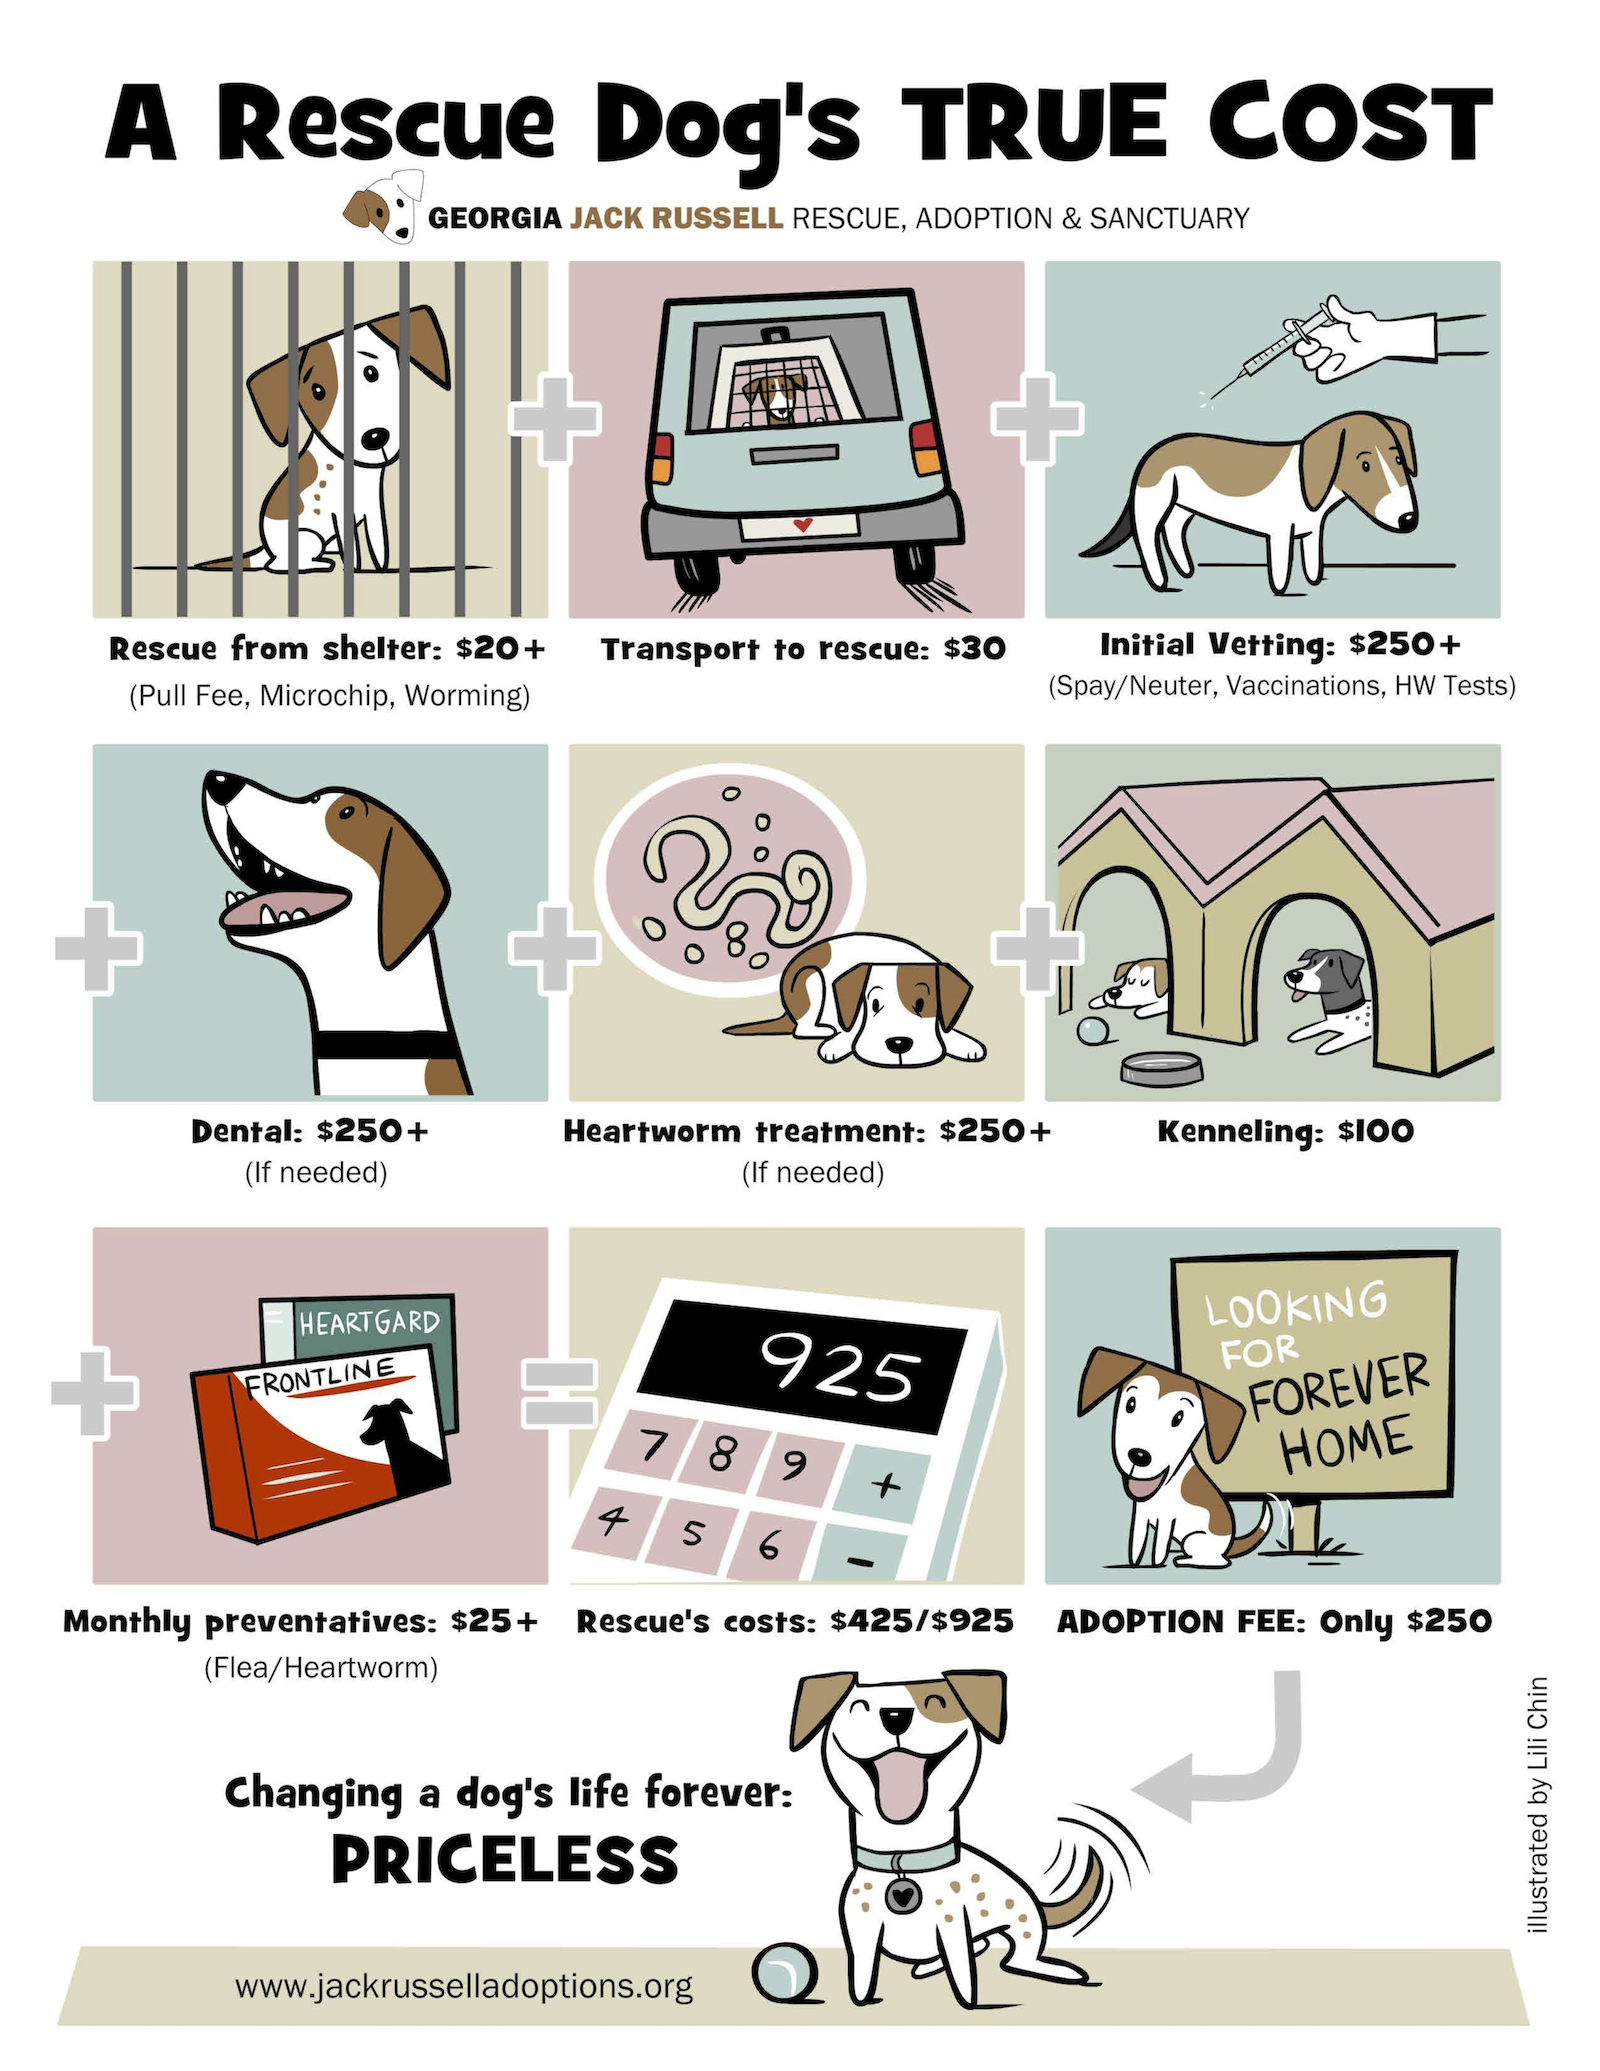 A Rescue Dog's Trust Cost by Georgia JRT and Lili Chin